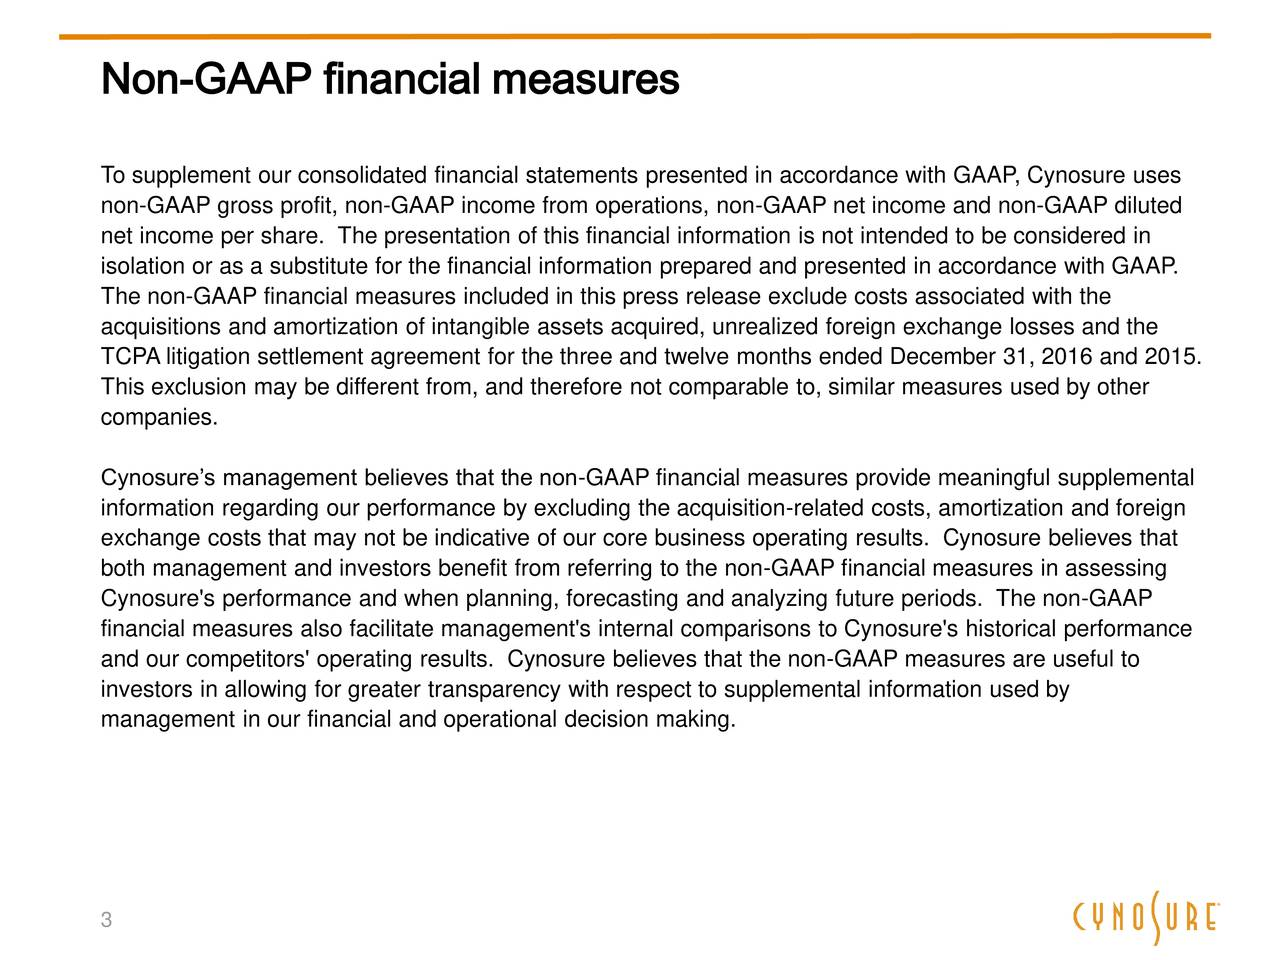 To supplement our consolidated financial statements presented in accordance with GAAP, Cynosure uses non-GAAP gross profit, non-GAAP income from operations, non-GAAP net income and non-GAAP diluted net income per share. The presentation of this financial information is not intended to be considered in isolation or as a substitute for the financial information prepared and presented in accordance with GAAP. The non-GAAP financial measures included in this press release exclude costs associated with the acquisitions and amortization of intangible assets acquired, unrealized foreign exchange losses and the TCPA litigation settlement agreement for the three and twelve months ended December 31, 2016 and 2015. This exclusion may be different from, and therefore not comparable to, similar measures used by other companies. Cynosures management believes that the non-GAAP financial measures provide meaningful supplemental information regarding our performance by excluding the acquisition-related costs, amortization and foreign exchange costs that may not be indicative of our core business operating results. Cynosure believes that both management and investors benefit from referring to the non-GAAP financial measures in assessing Cynosure's performance and when planning, forecasting and analyzing future periods. The non-GAAP financial measures also facilitate management's internal comparisons to Cynosure's historical performance and our competitors' operating results. Cynosure believes that the non-GAAP measures are useful to investors in allowing for greater transparency with respect to supplemental information used by management in our financial and operational decision making. 3